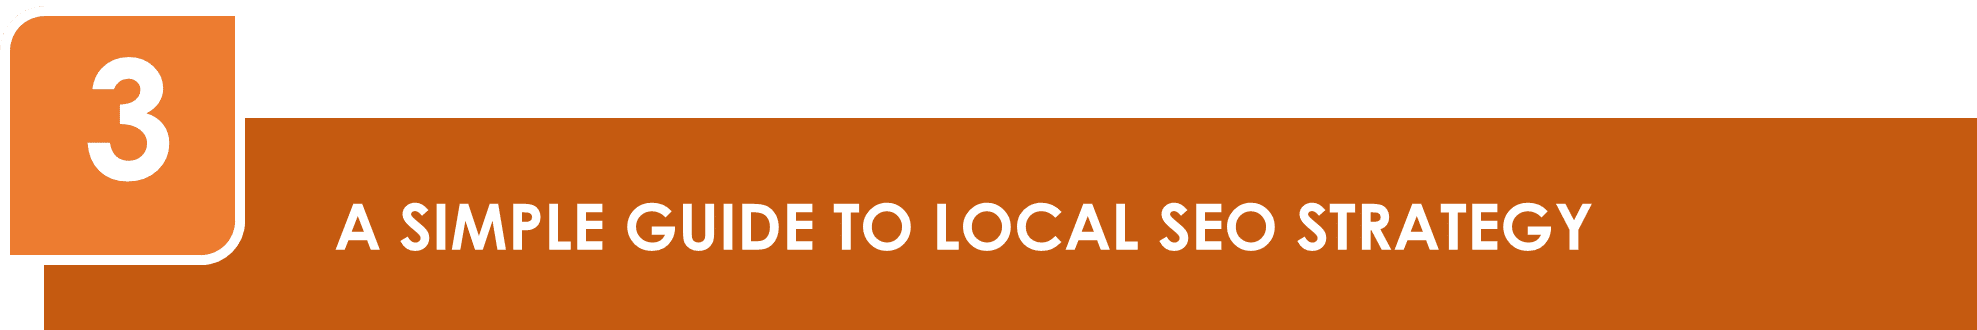 A Simple Guide to Local SEO Strategy